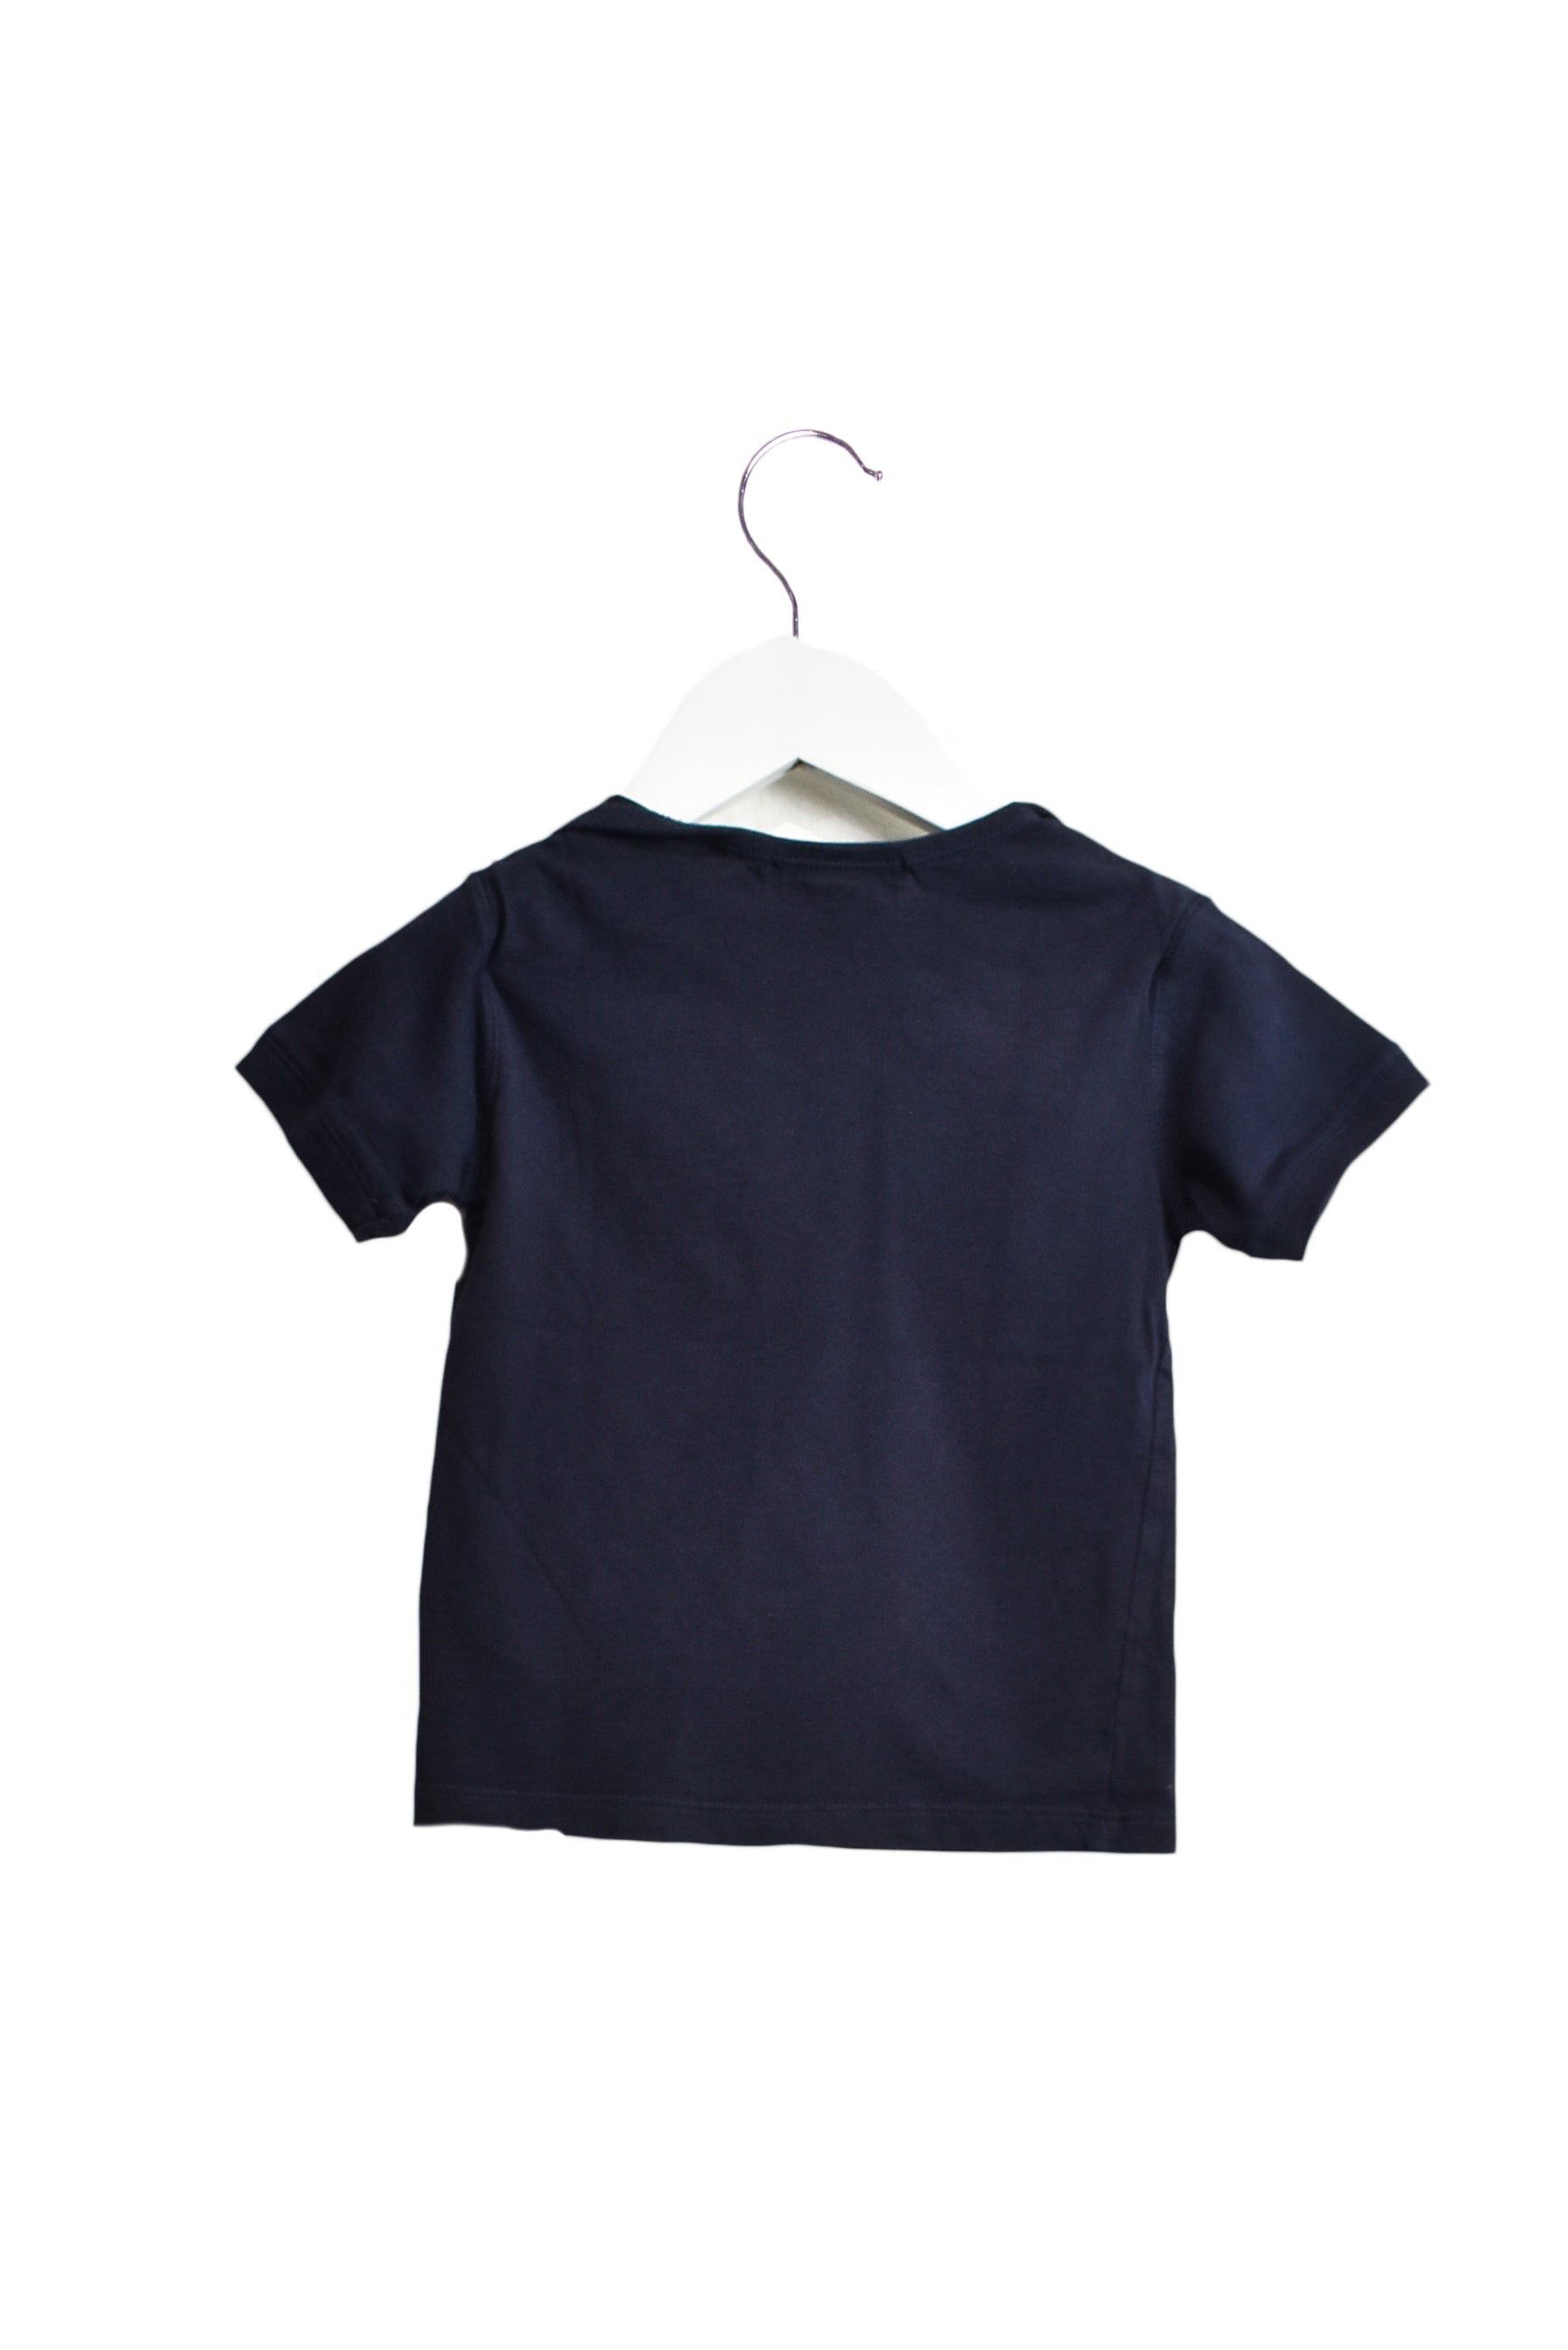 0d88b051f3e 10018714 Burberry Kids~Top 2T at Retykle